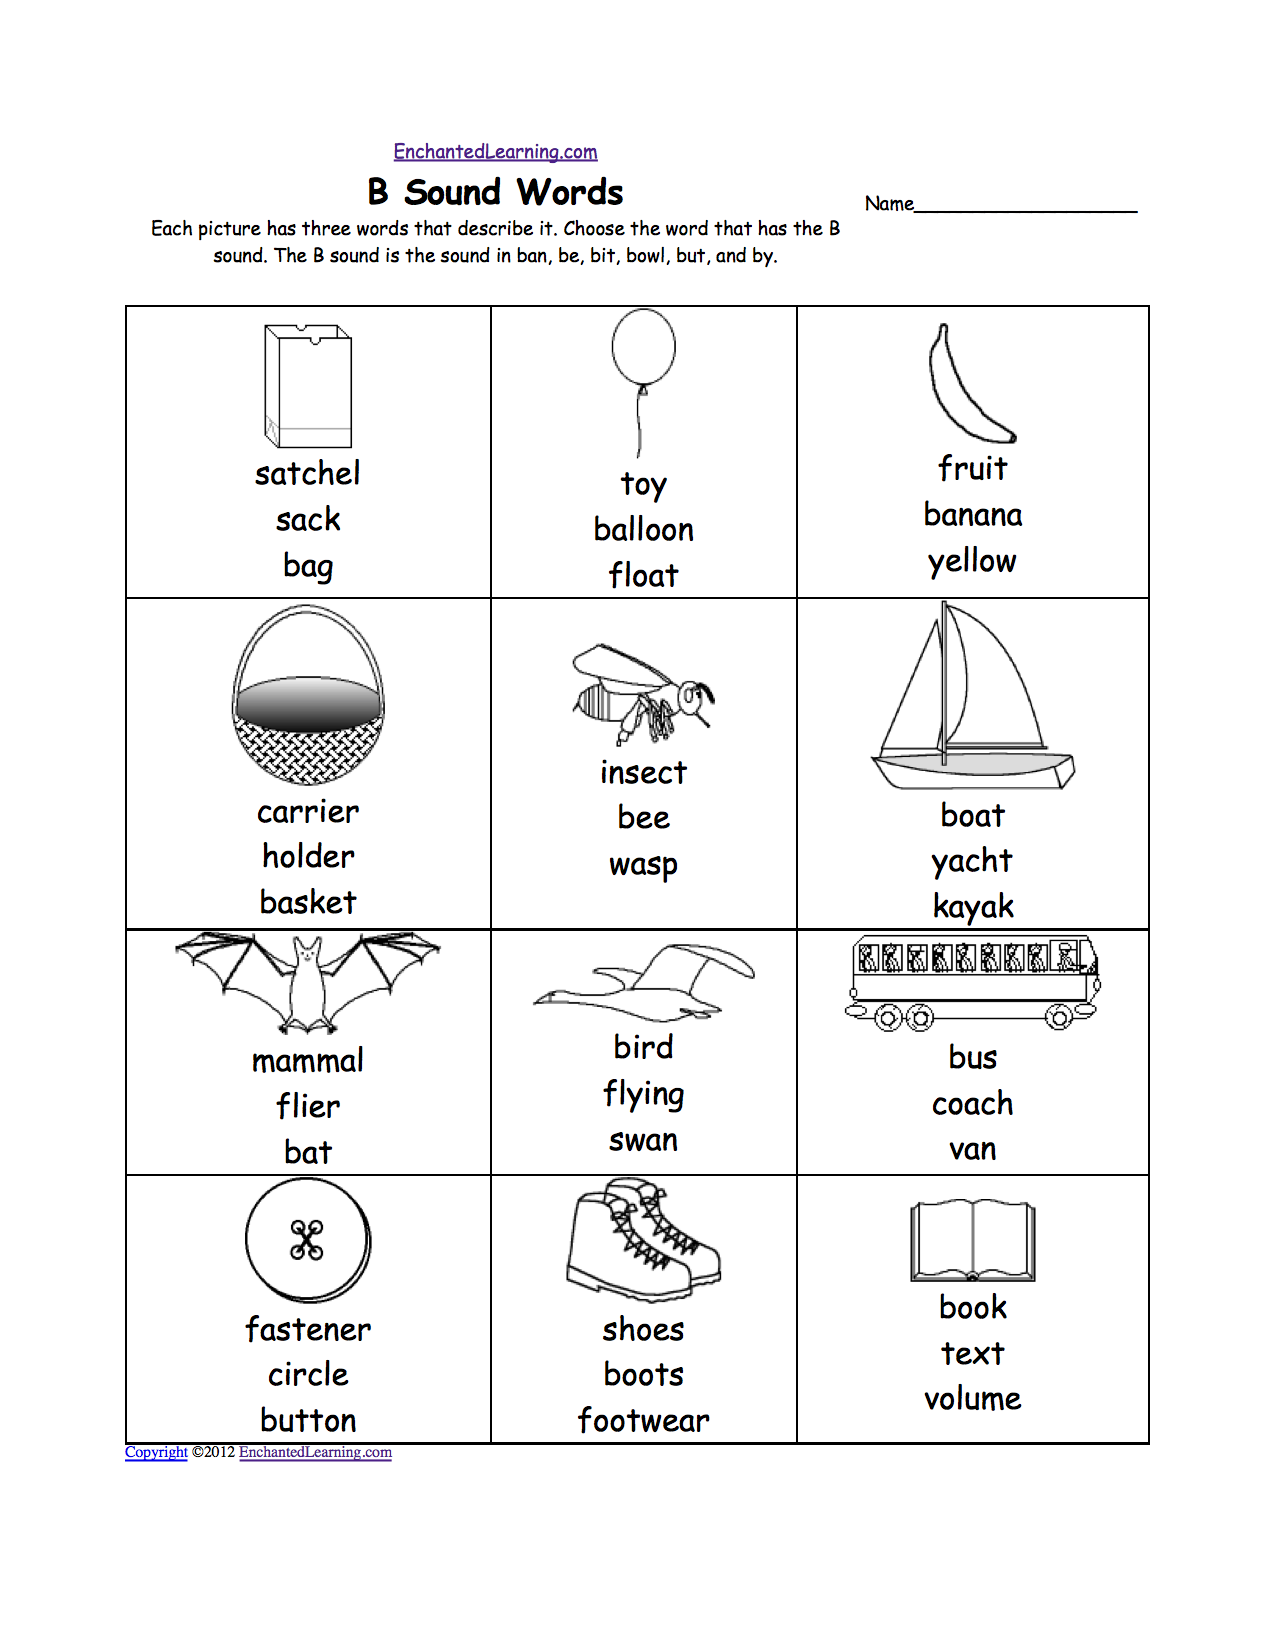 Aldiablosus  Winning Phonics Worksheets Multiple Choice Worksheets To Print  With Foxy Quotbquot Sound Phonics Worksheet Multiple Choice Each Picture Has Three Words That Describe It Choose The Word That Has A Quotbquot Sound The Quotbquot Sound Is The Sound  With Agreeable Phases Of Meiosis Worksheet Key Also Shapes Worksheets For Preschoolers In Addition Verb Phrases Worksheet And Punctuation Worksheets For Kindergarten As Well As Free Spelling Printable Worksheets Additionally Multiplication And Division Of Rational Numbers Worksheet From Enchantedlearningcom With Aldiablosus  Foxy Phonics Worksheets Multiple Choice Worksheets To Print  With Agreeable Quotbquot Sound Phonics Worksheet Multiple Choice Each Picture Has Three Words That Describe It Choose The Word That Has A Quotbquot Sound The Quotbquot Sound Is The Sound  And Winning Phases Of Meiosis Worksheet Key Also Shapes Worksheets For Preschoolers In Addition Verb Phrases Worksheet From Enchantedlearningcom